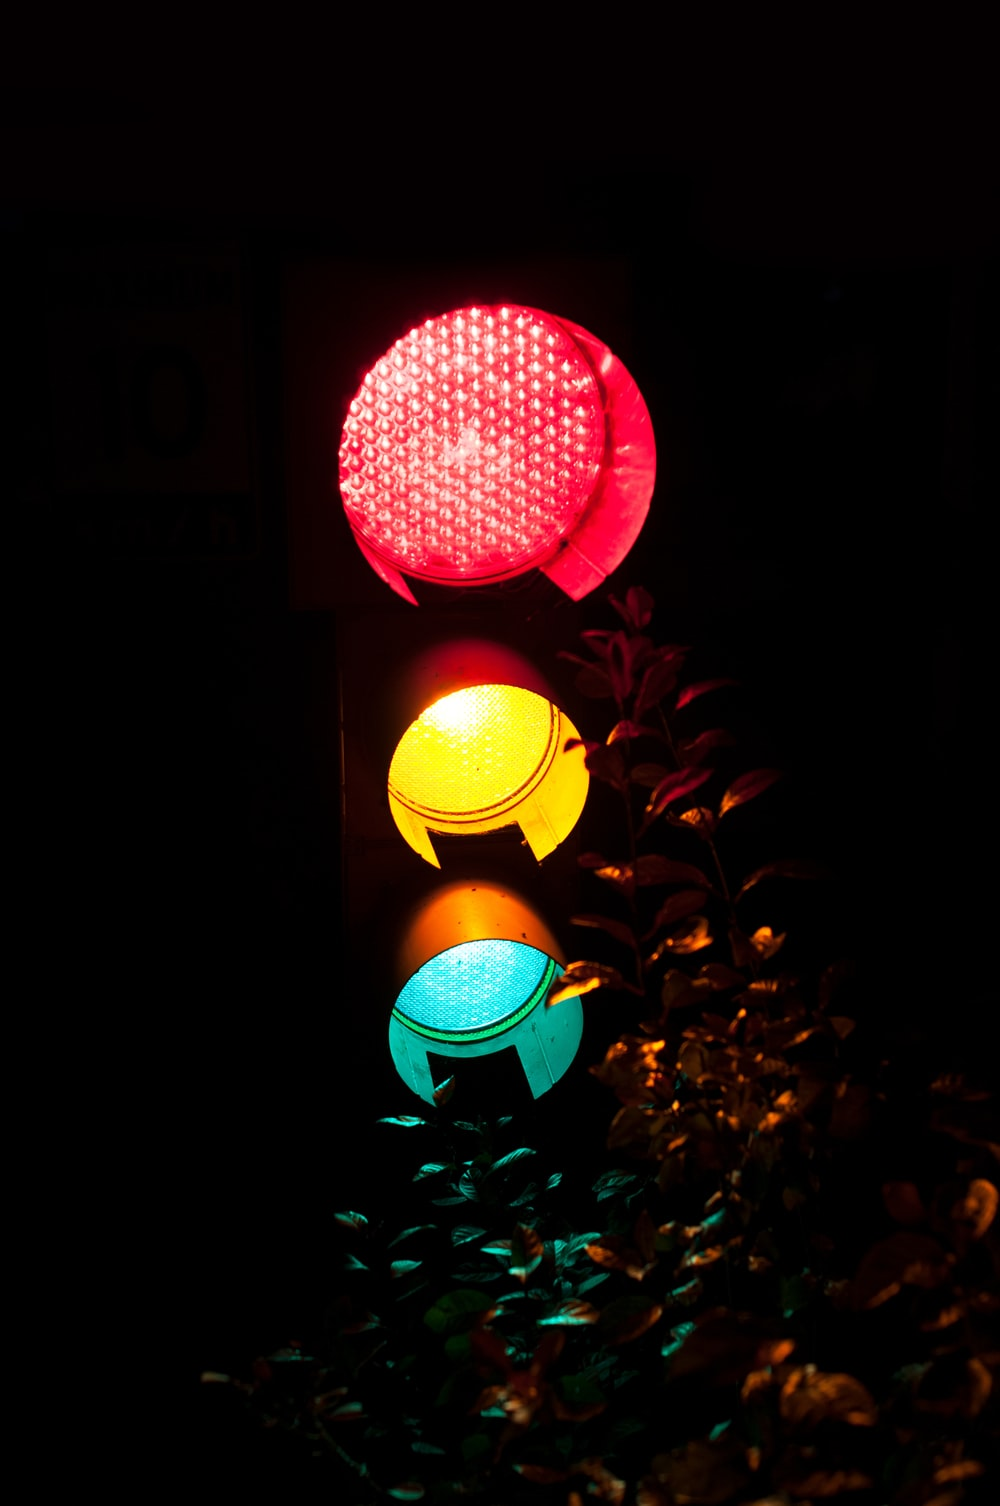 red green and yellow light